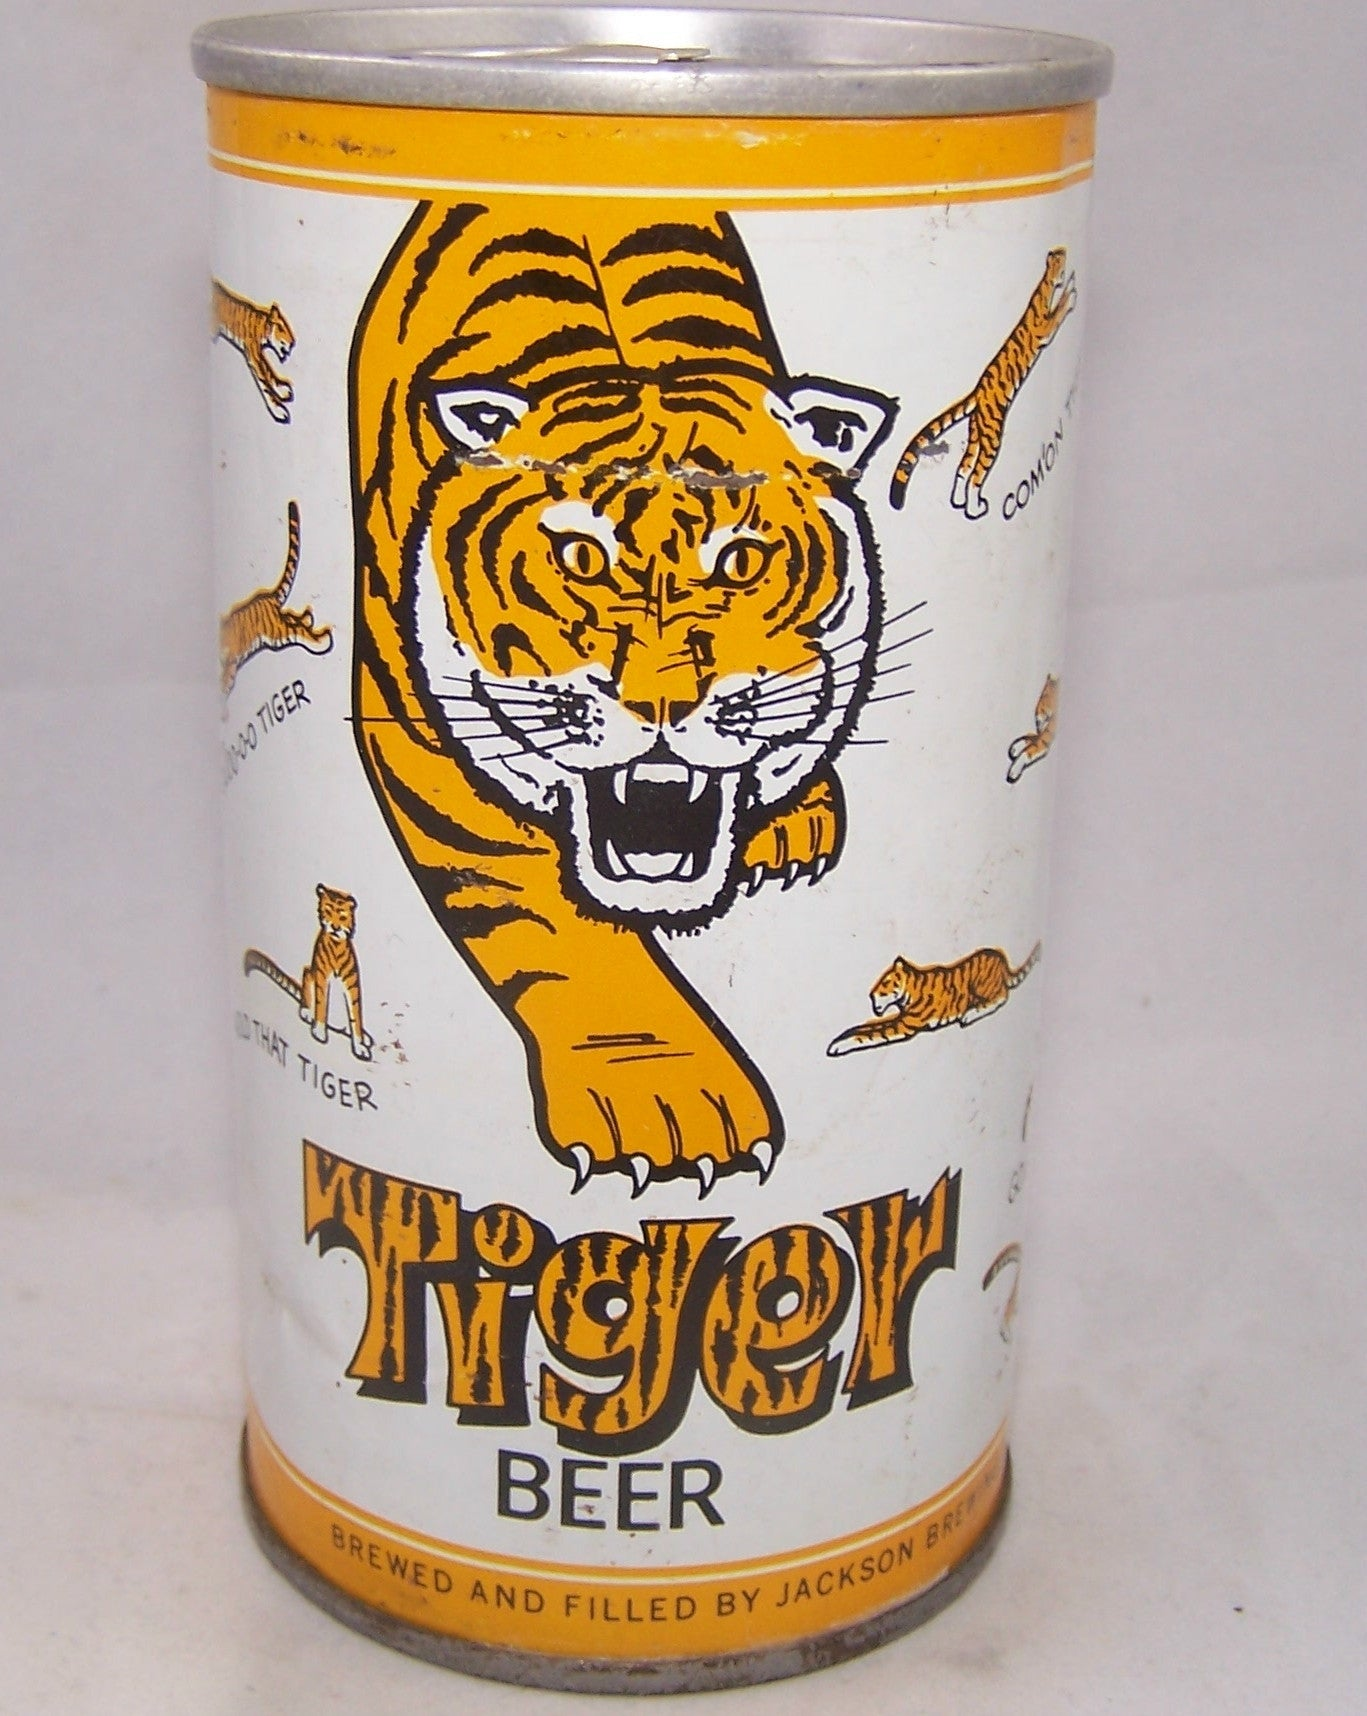 Tiger Beer, USBC II 130-07, Grade 1/1- Sold on 12/19/16